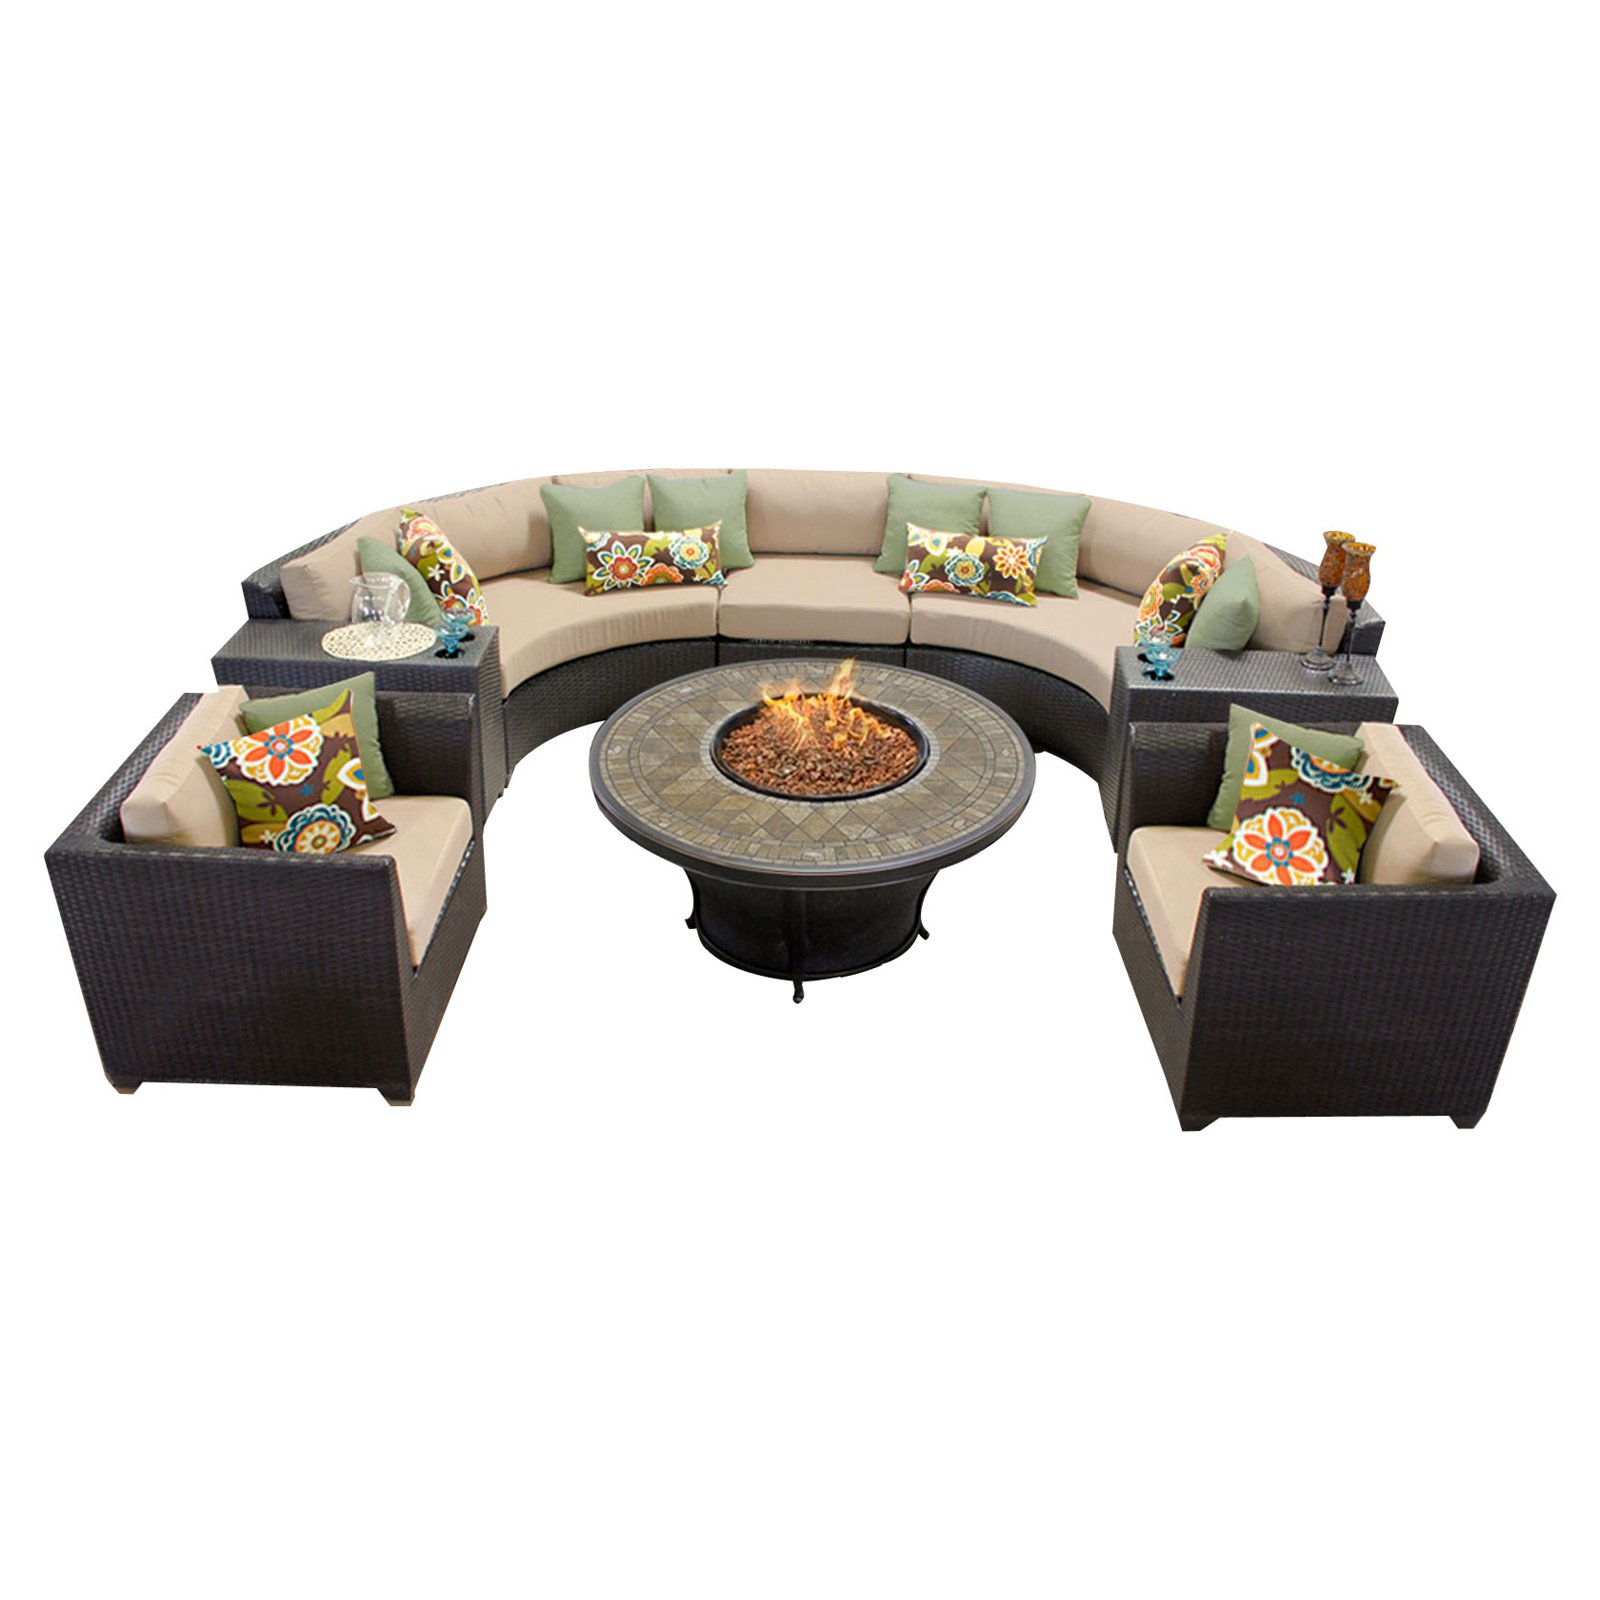 TK Classics Barbados Wicker 8 Piece Patio Conversation Set with Fire Pit Table